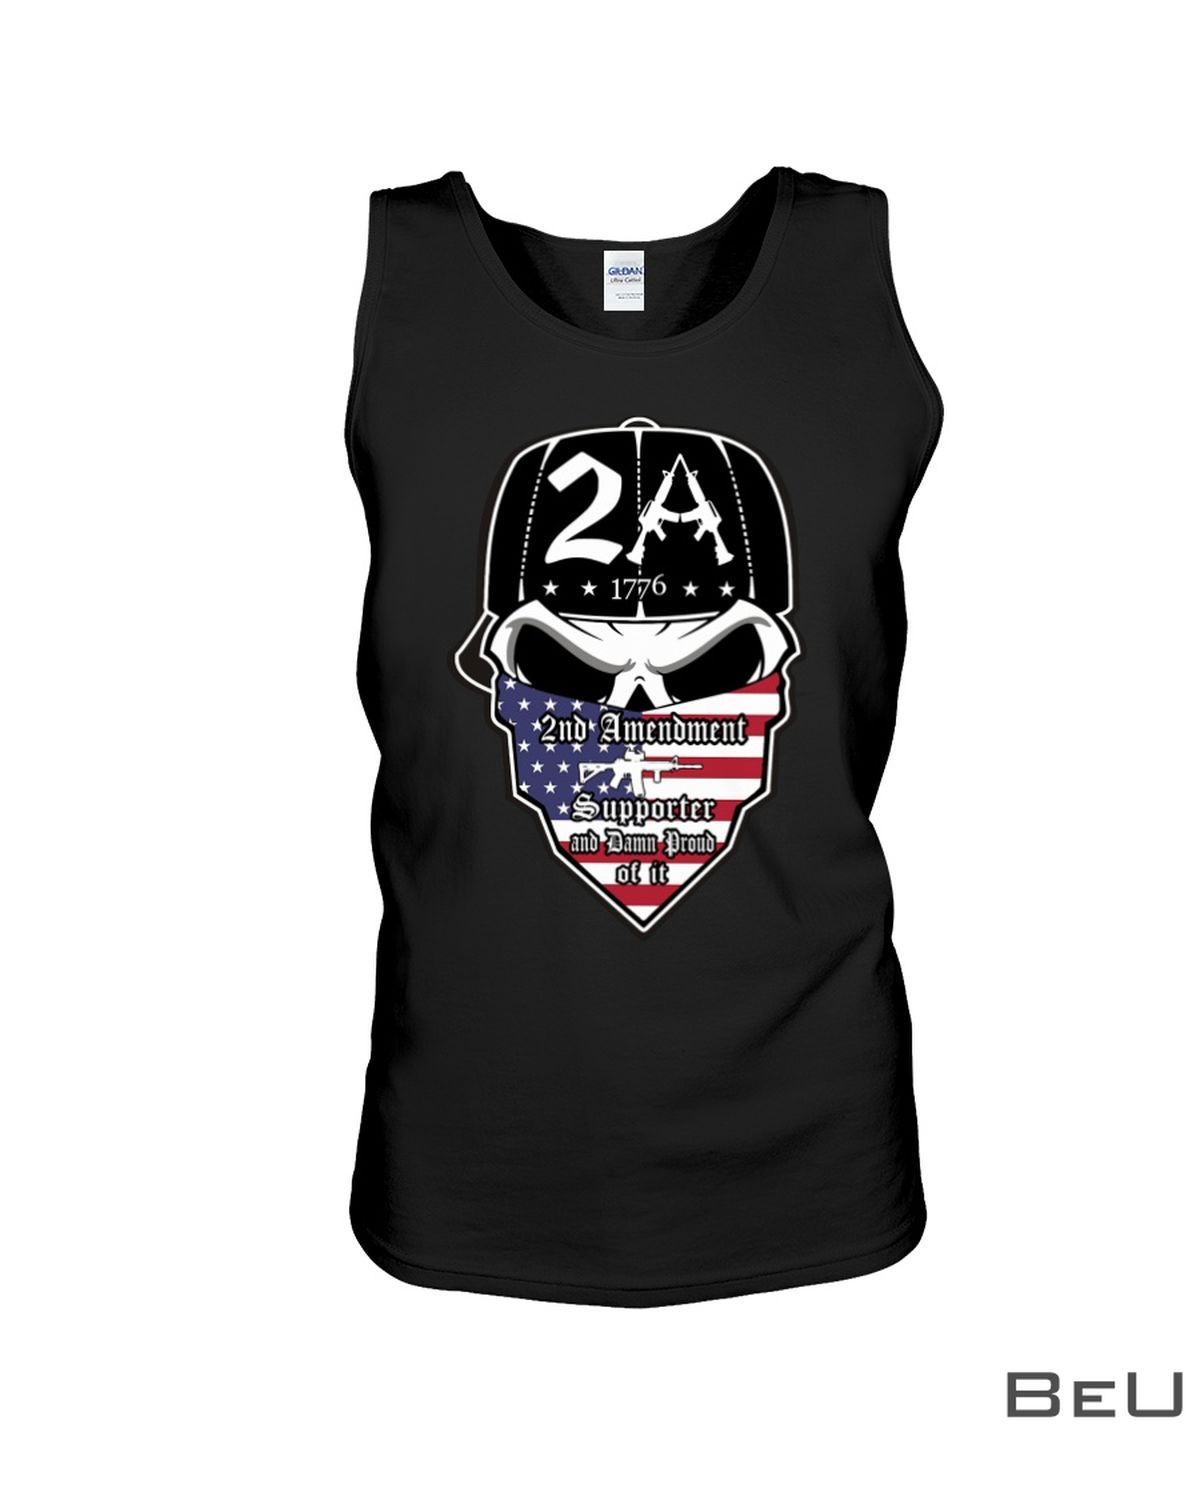 2A 1776 2nd Amendment Supporter And Damn Proud Of It Skull Shirtc